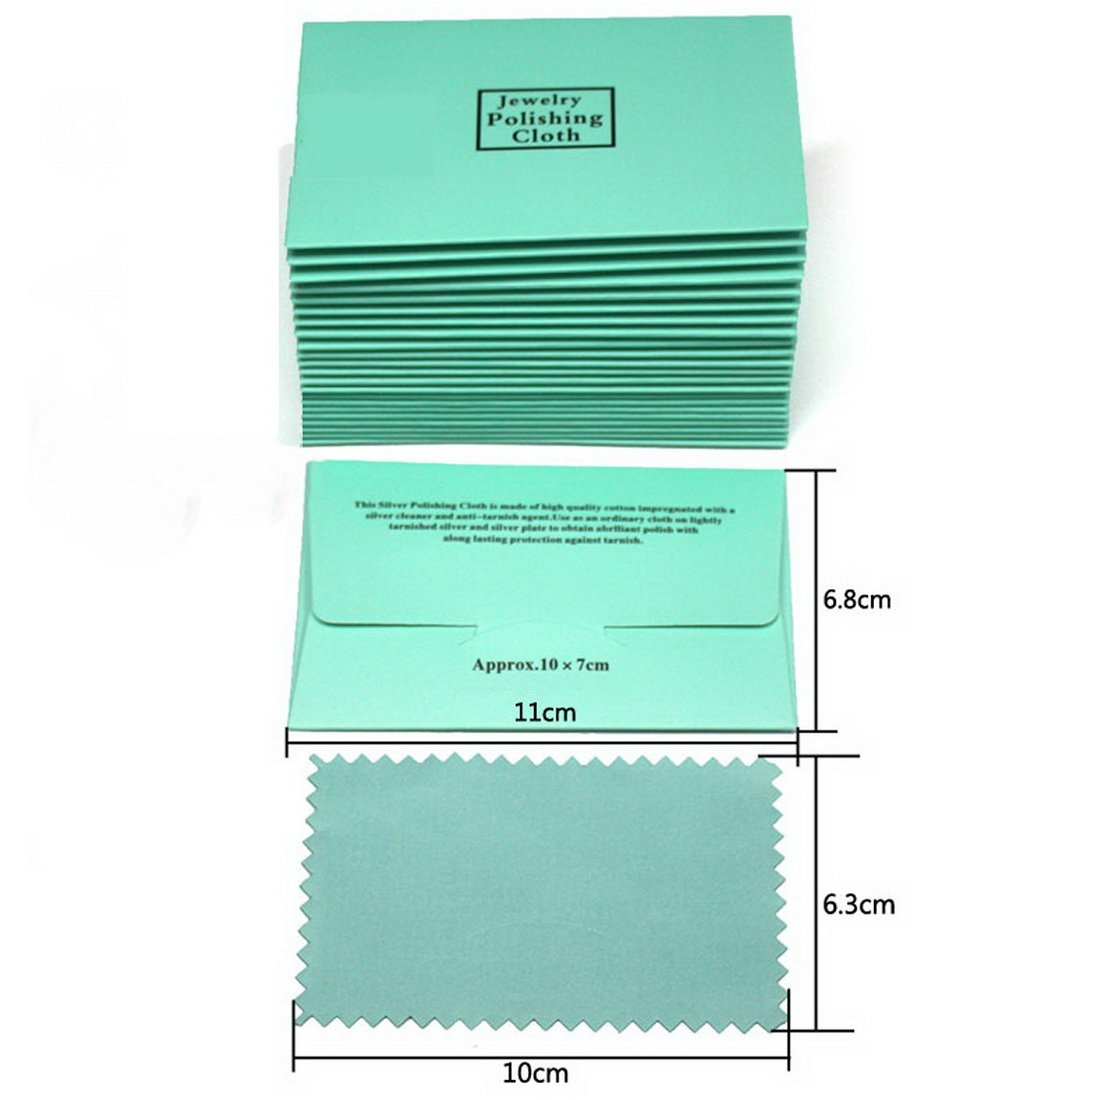 Mecoo Cotton Jewelry Polishing Cloth 6.3x10CM Well Packed for Silver Gold & Most Other Jewelry JC